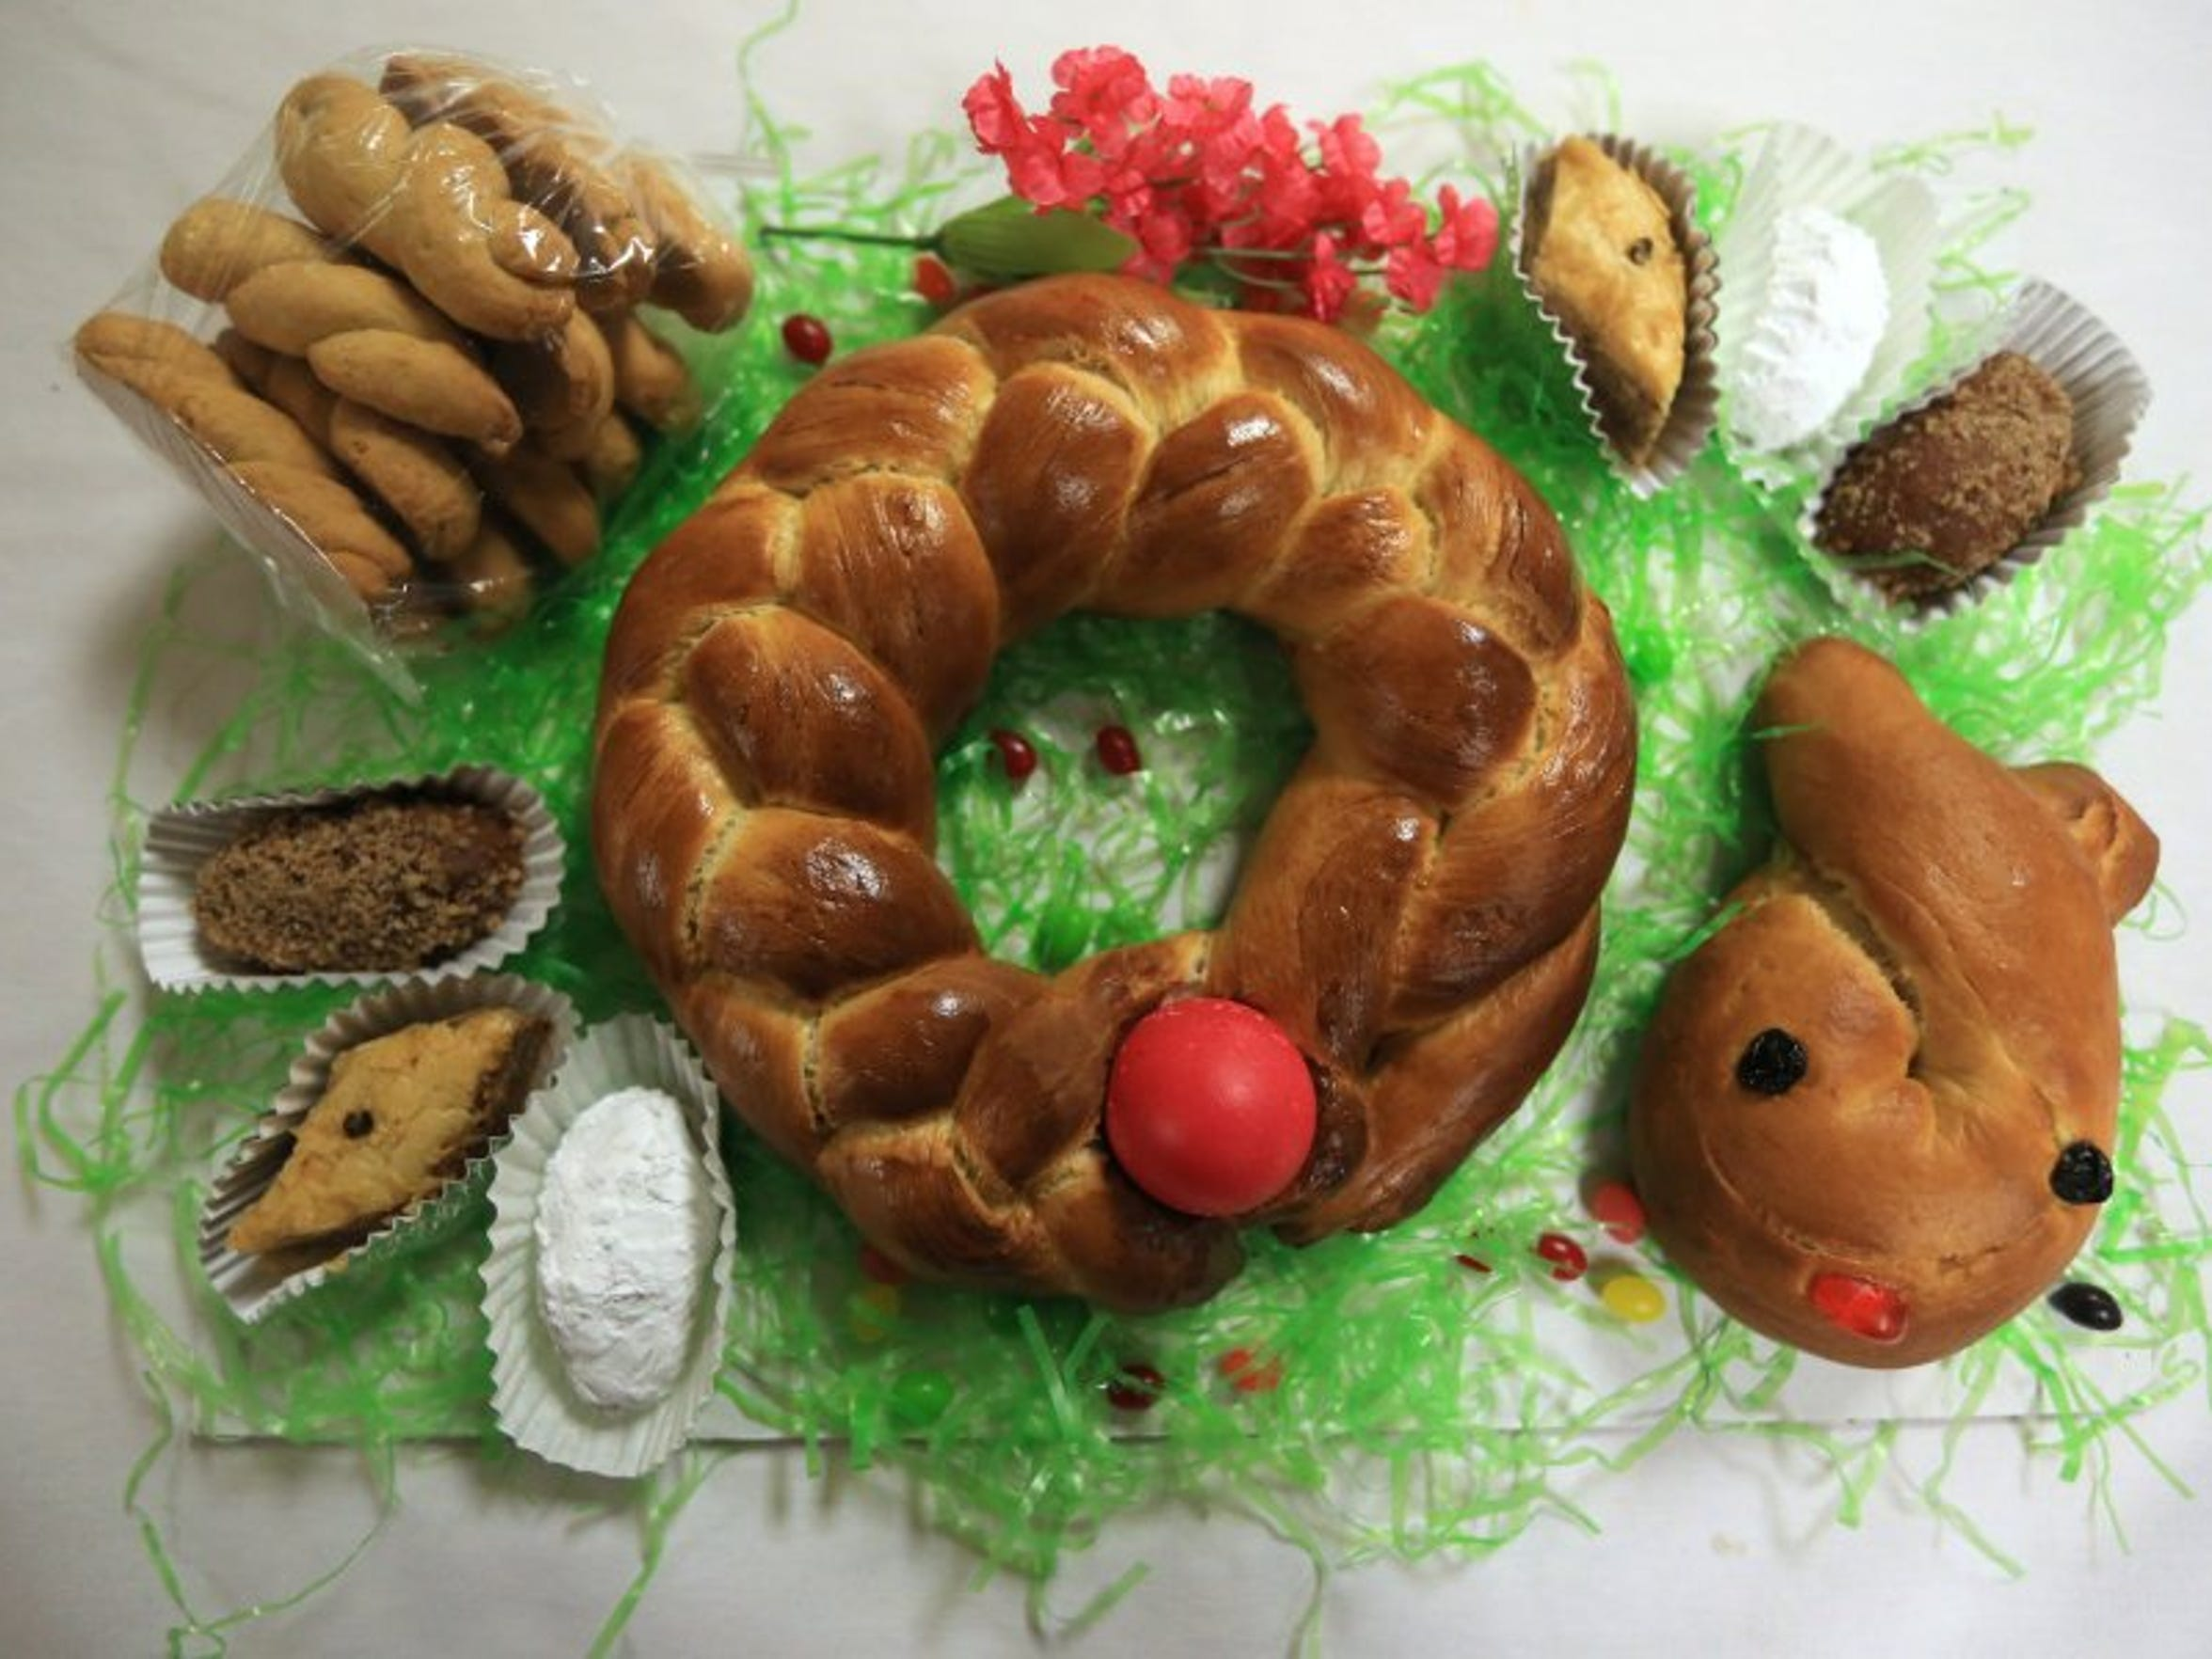 Rachel Denny Clow/Caller-Times The annual Easter Bake Sale at the St. Nicholas Greek Orthodox Church will include round and bunny breads, an assortment of Greek pastries and a new addition this year, Pastitsio, a macaroni dish with beef filling topped with béchamel sauce.